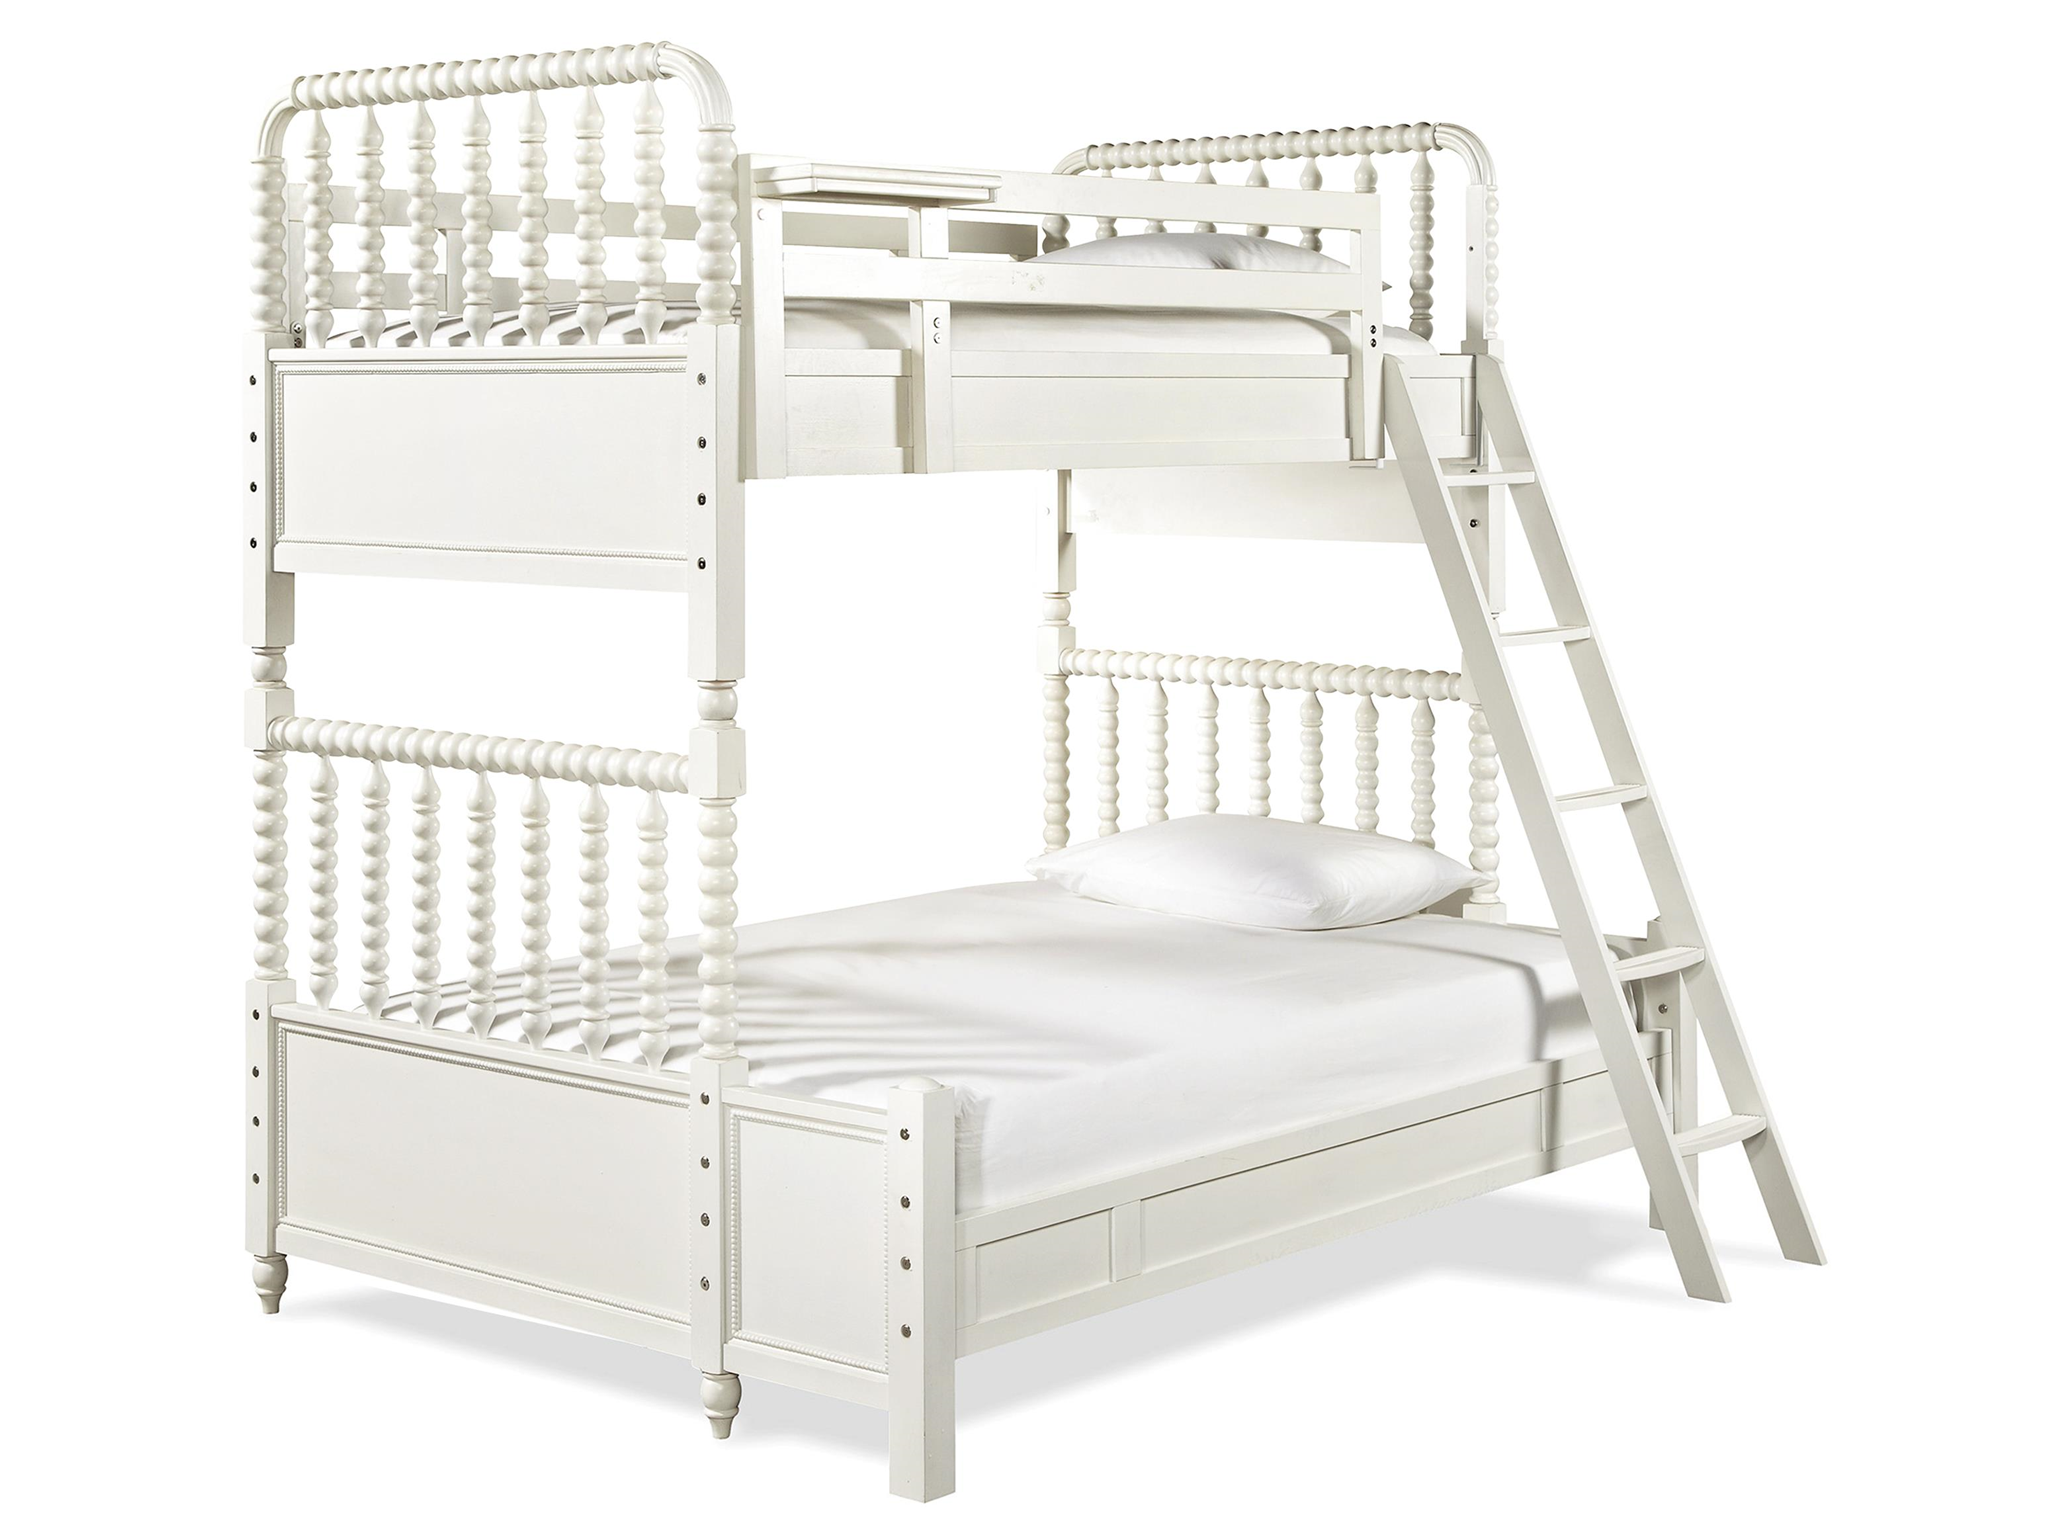 Bellamy | Vintage Bunk Bed (Twin over Full)